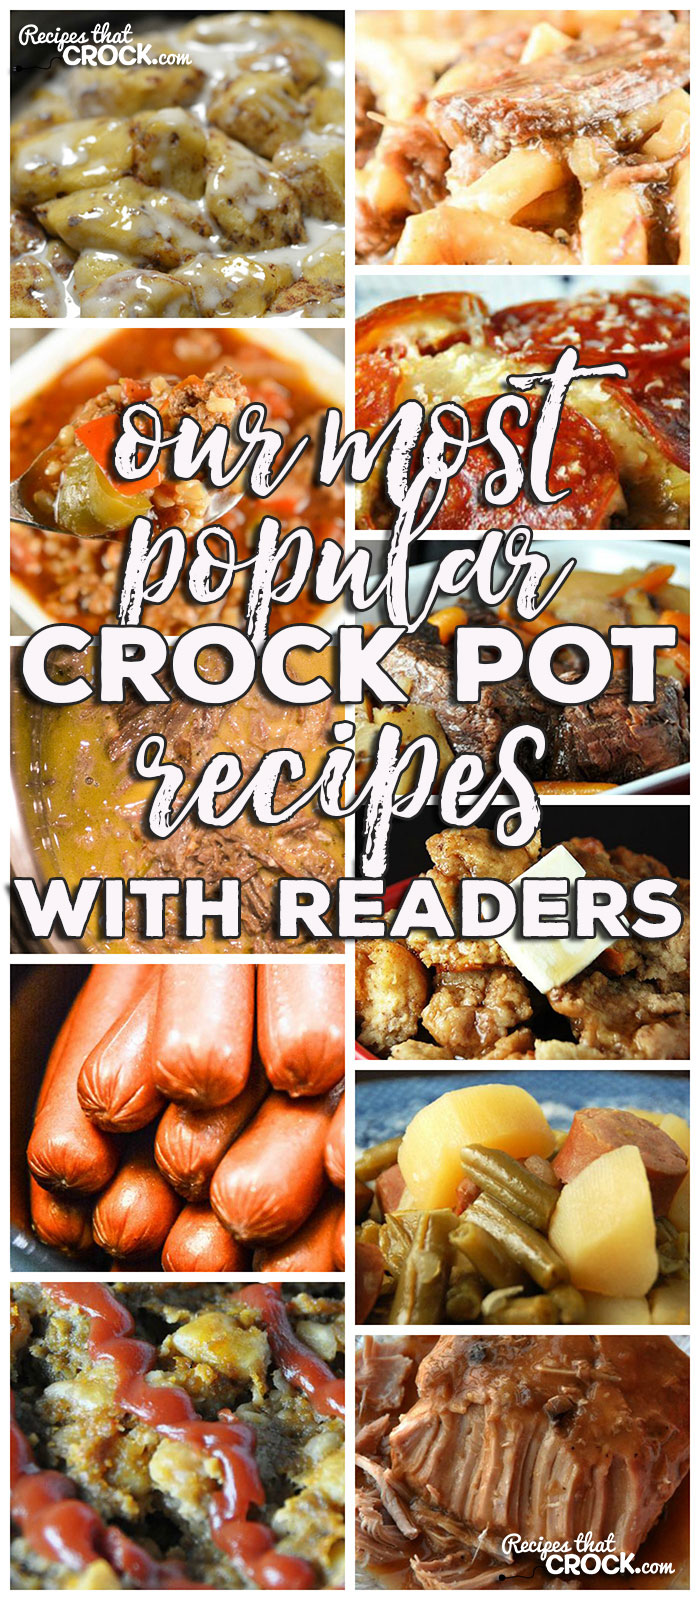 This week for our Friday Favoriteswe haveOur Most Popular Crock Pot Recipes with Our Readers like Cooking Hot Dogs in Bulk in a Crock Pot,Slow Cooker Beef Noodles,Crock Pot Ham Broccoli Cheese Casserole,Slow Cooker French Toast Casserole,Creamy Mississippi Instant Pot Roast,Crock Pot Old Fashioned Meatloaf,Crock Pot Mississippi Chicken Thighs,Crock Pot Bourbon Chicken,Crock Pot Chicken and Stuffing Casserole,Crock Pot Crustless Pizza,Crock Pot Pork Loin with Gravy,Crock Pot Chicken Drumsticks,Slow Cooker Stuffed Green Pepper Soup,Crock Pot Cinnamon Roll Casserole,The Perfect Crock Pot Roast andCrock Pot Sausage, Green Beans and Potatoes.